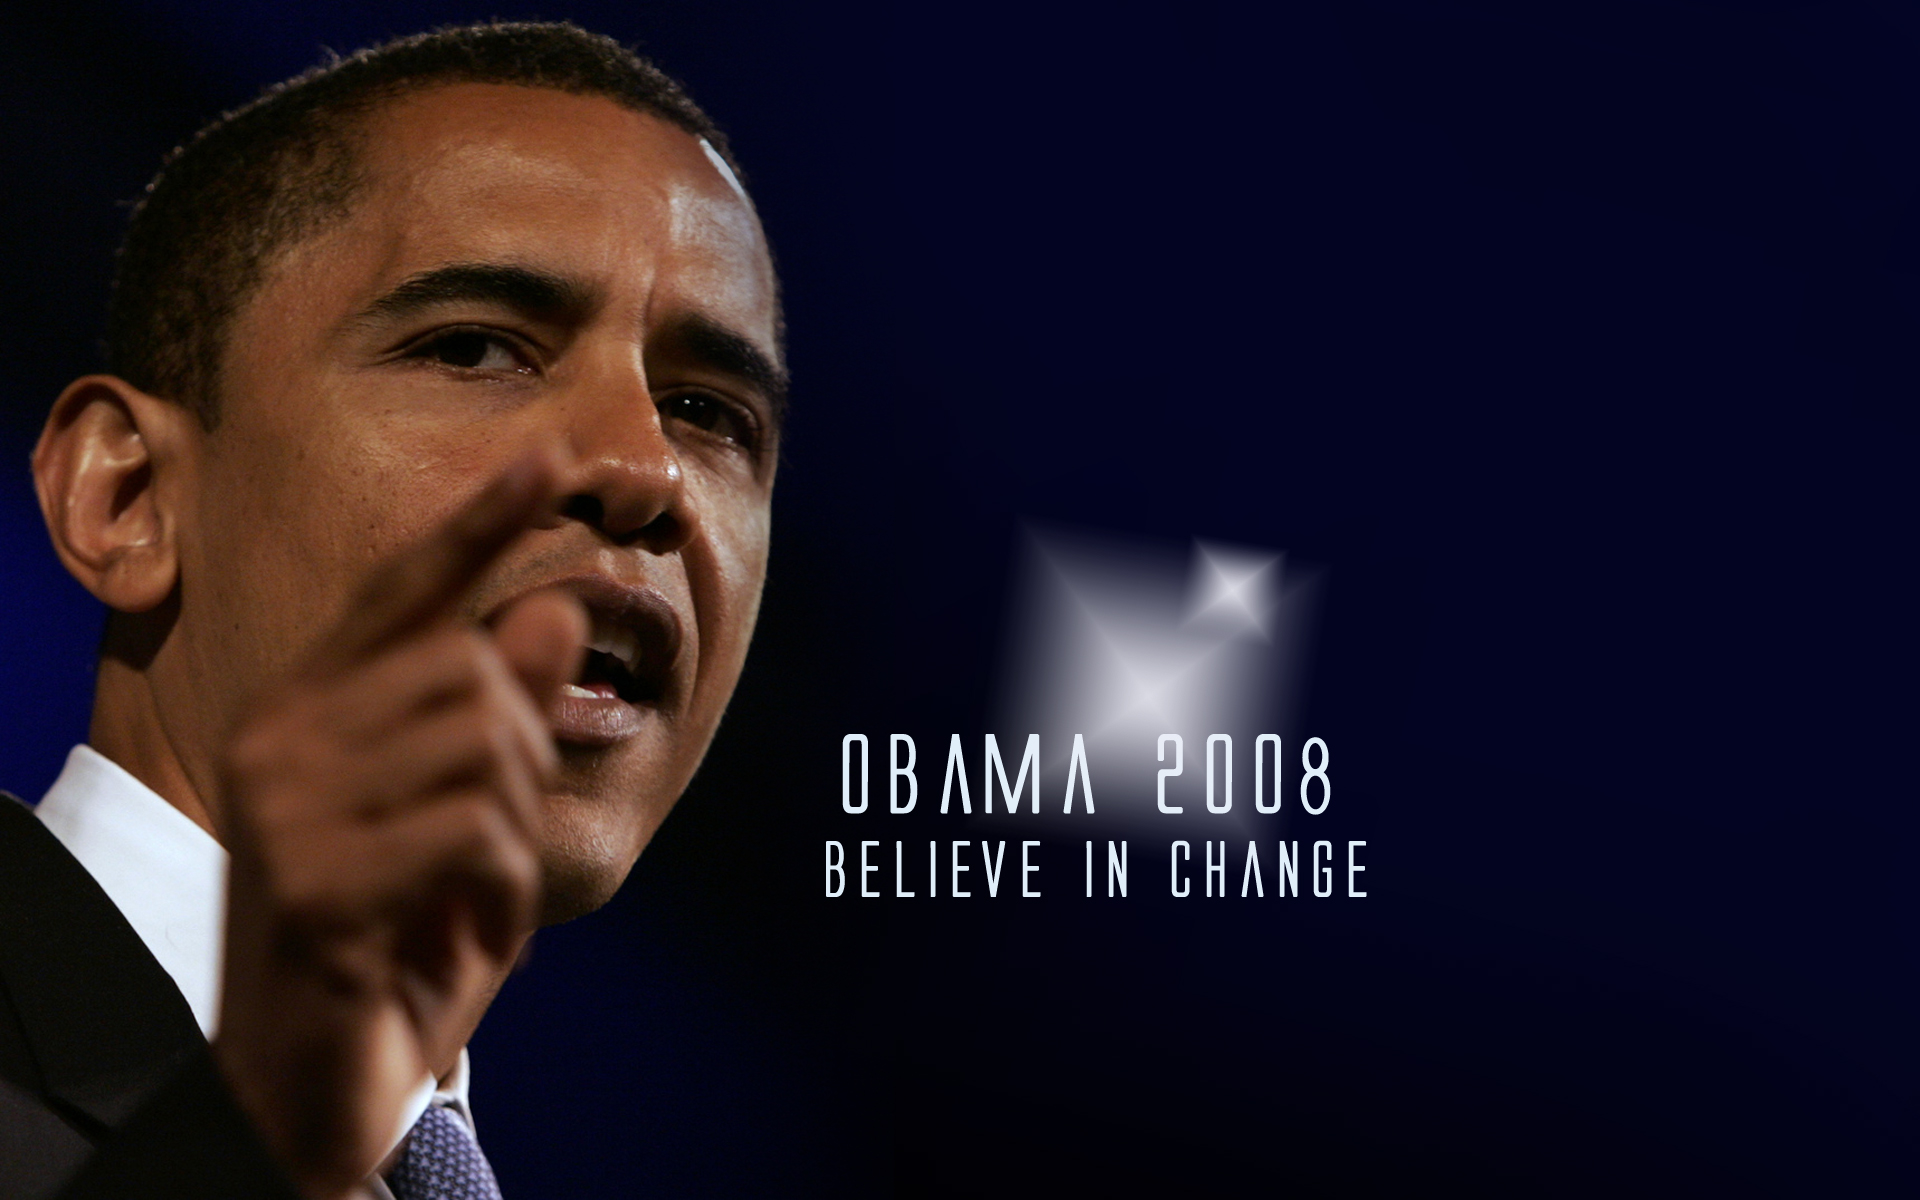 Obama Wallpapers